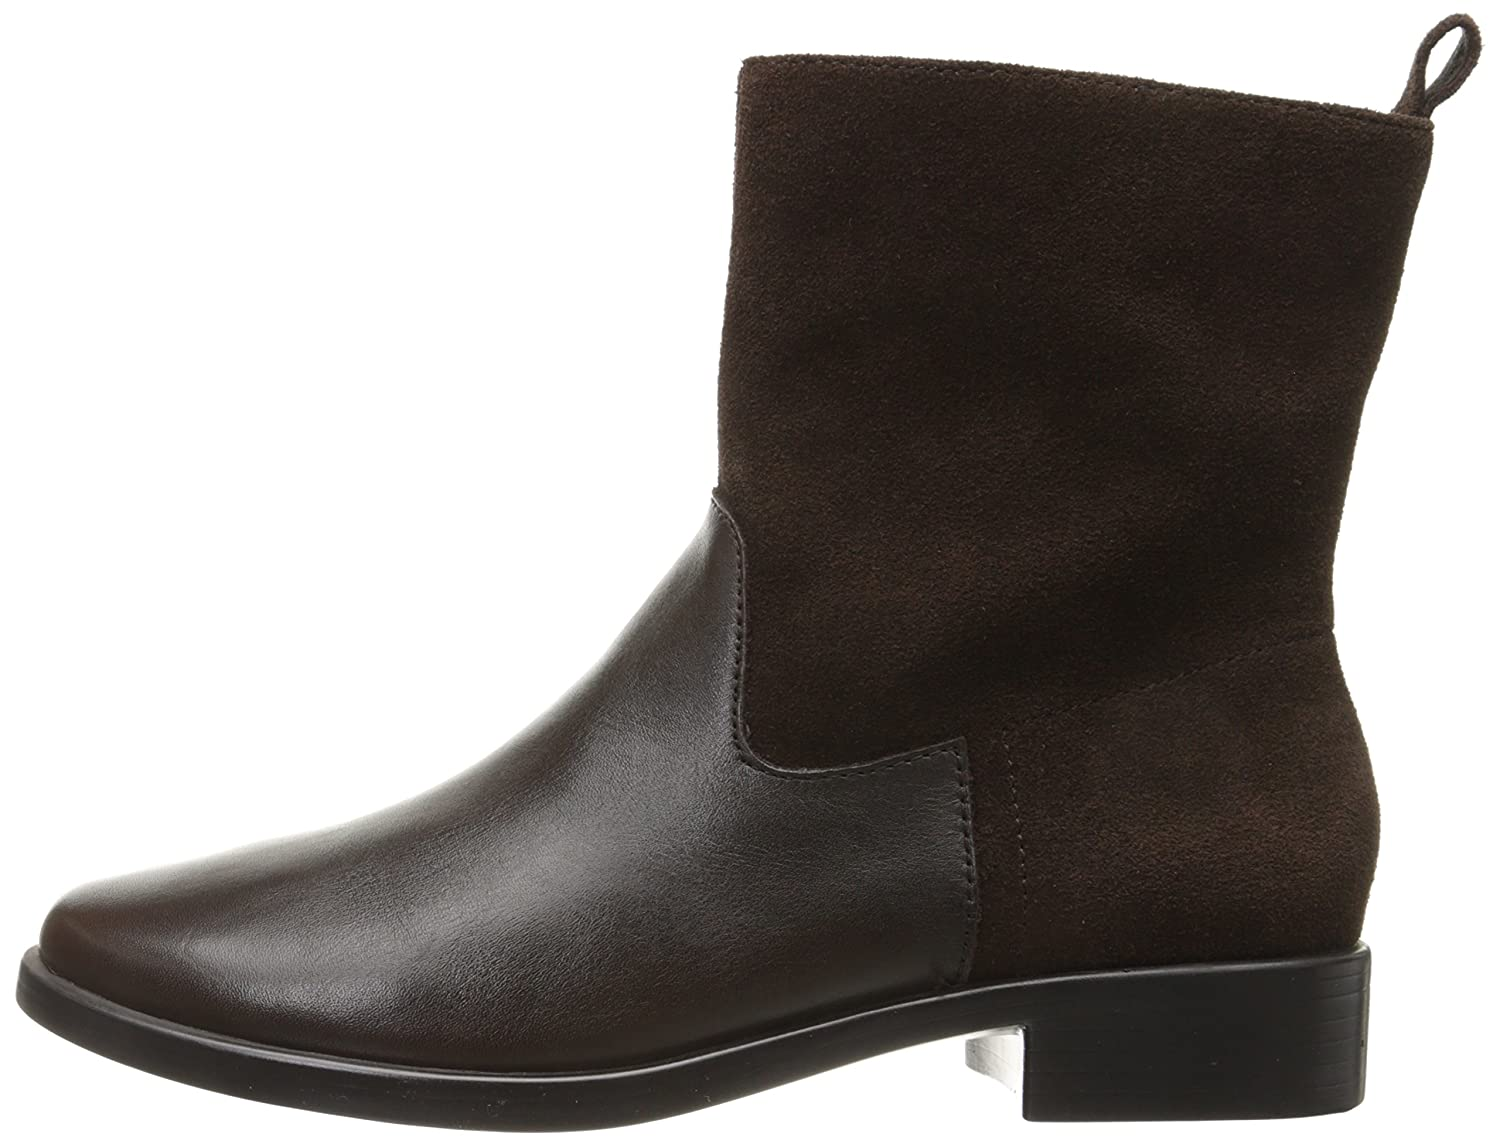 Aerosoles Women's Make A Wish Chelsea Boot